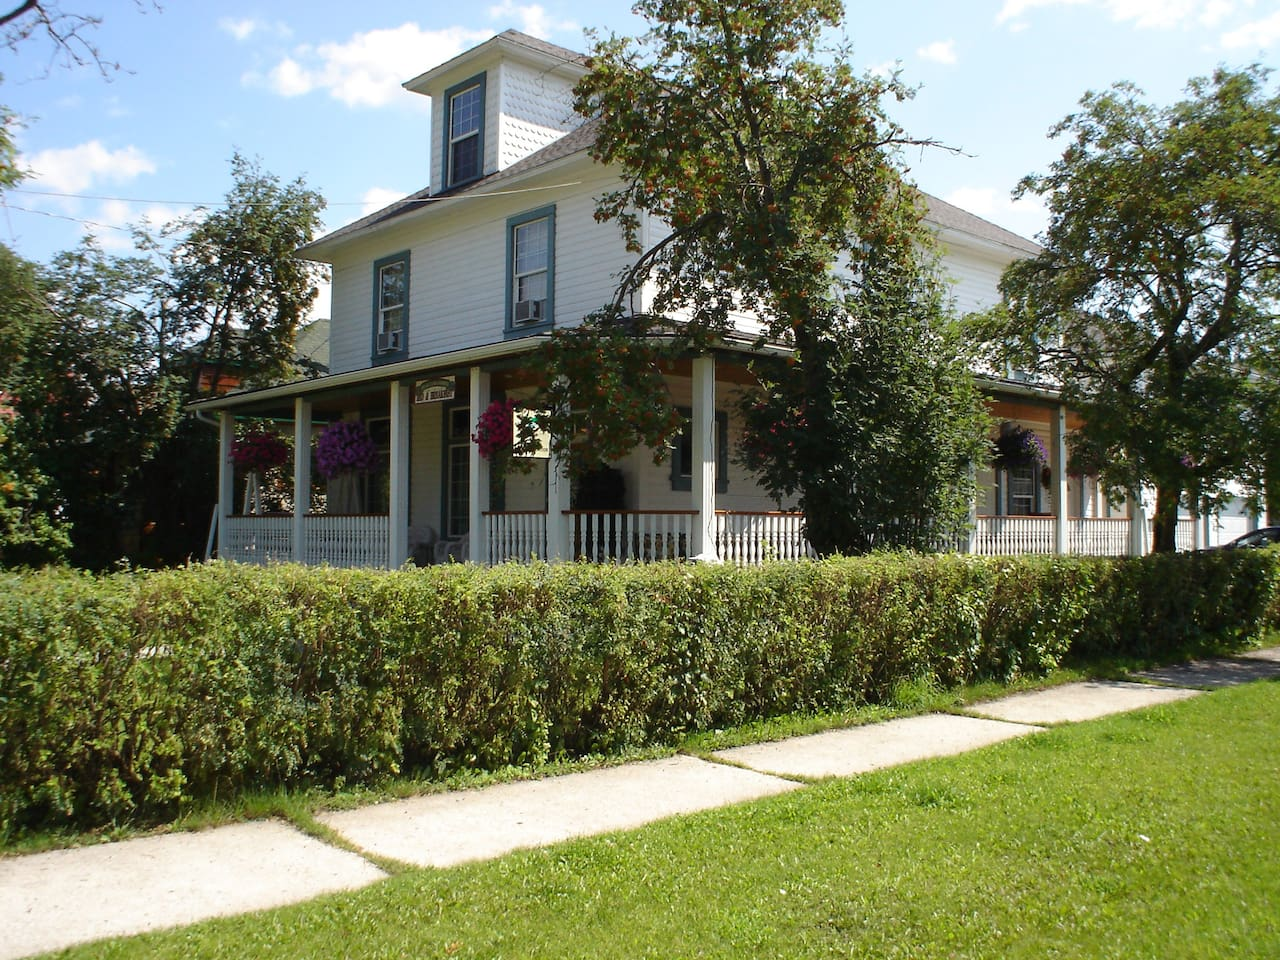 Present day photo of B&B. Recently, Disney used the B&B for scenes in the Movie Santa Paws 2.